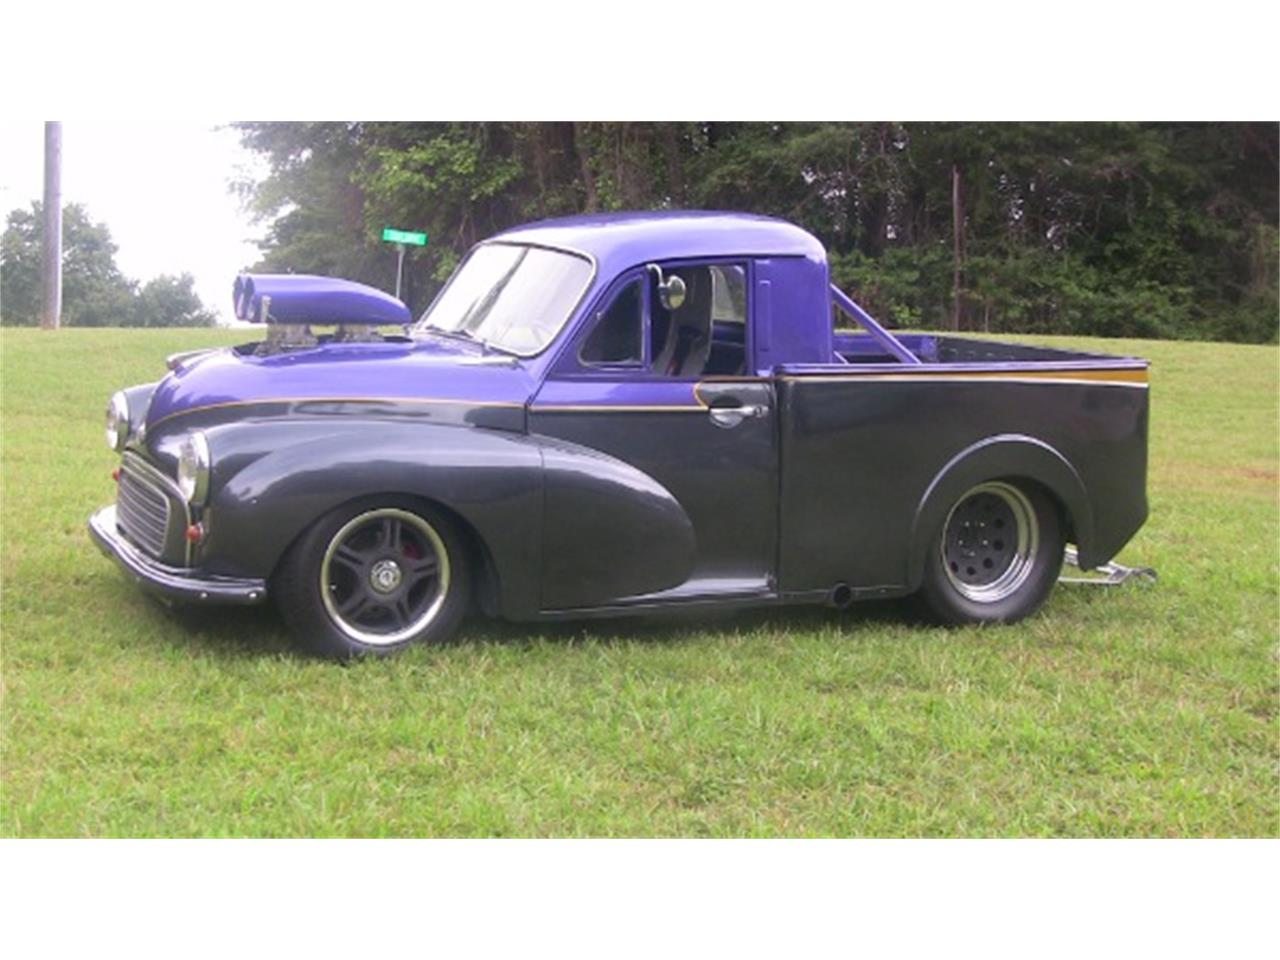 Large Picture of Classic 1960 Minor located in North Carolina - $14,500.00 Offered by Classic Lady Motors - K944